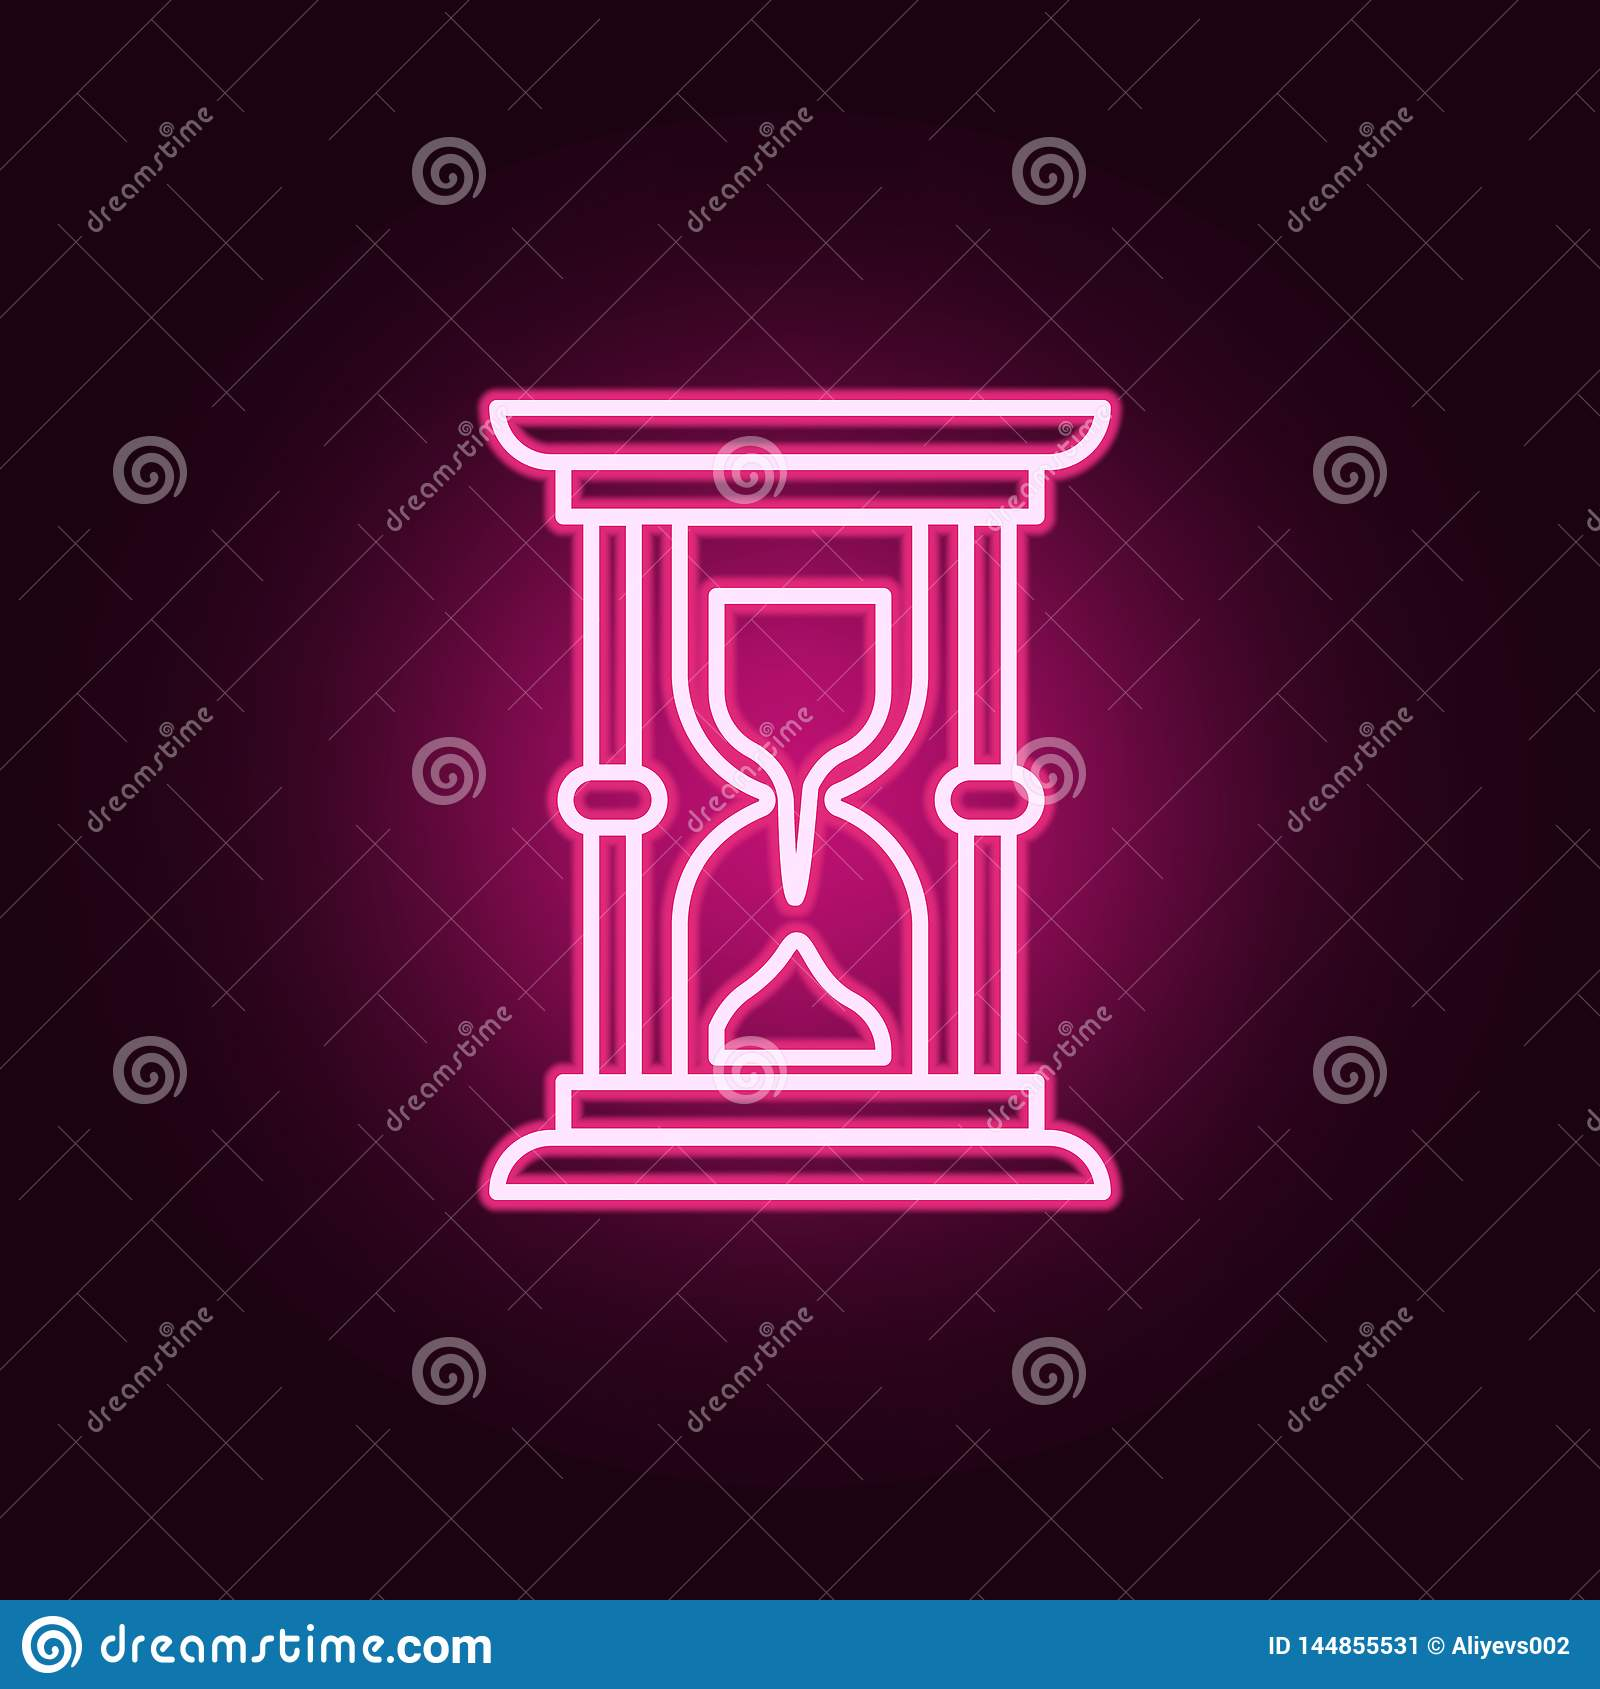 Hourglass, time neon icon. Elements of Law & Justice set. Simple icon for websites, web design, mobile app, info graphics